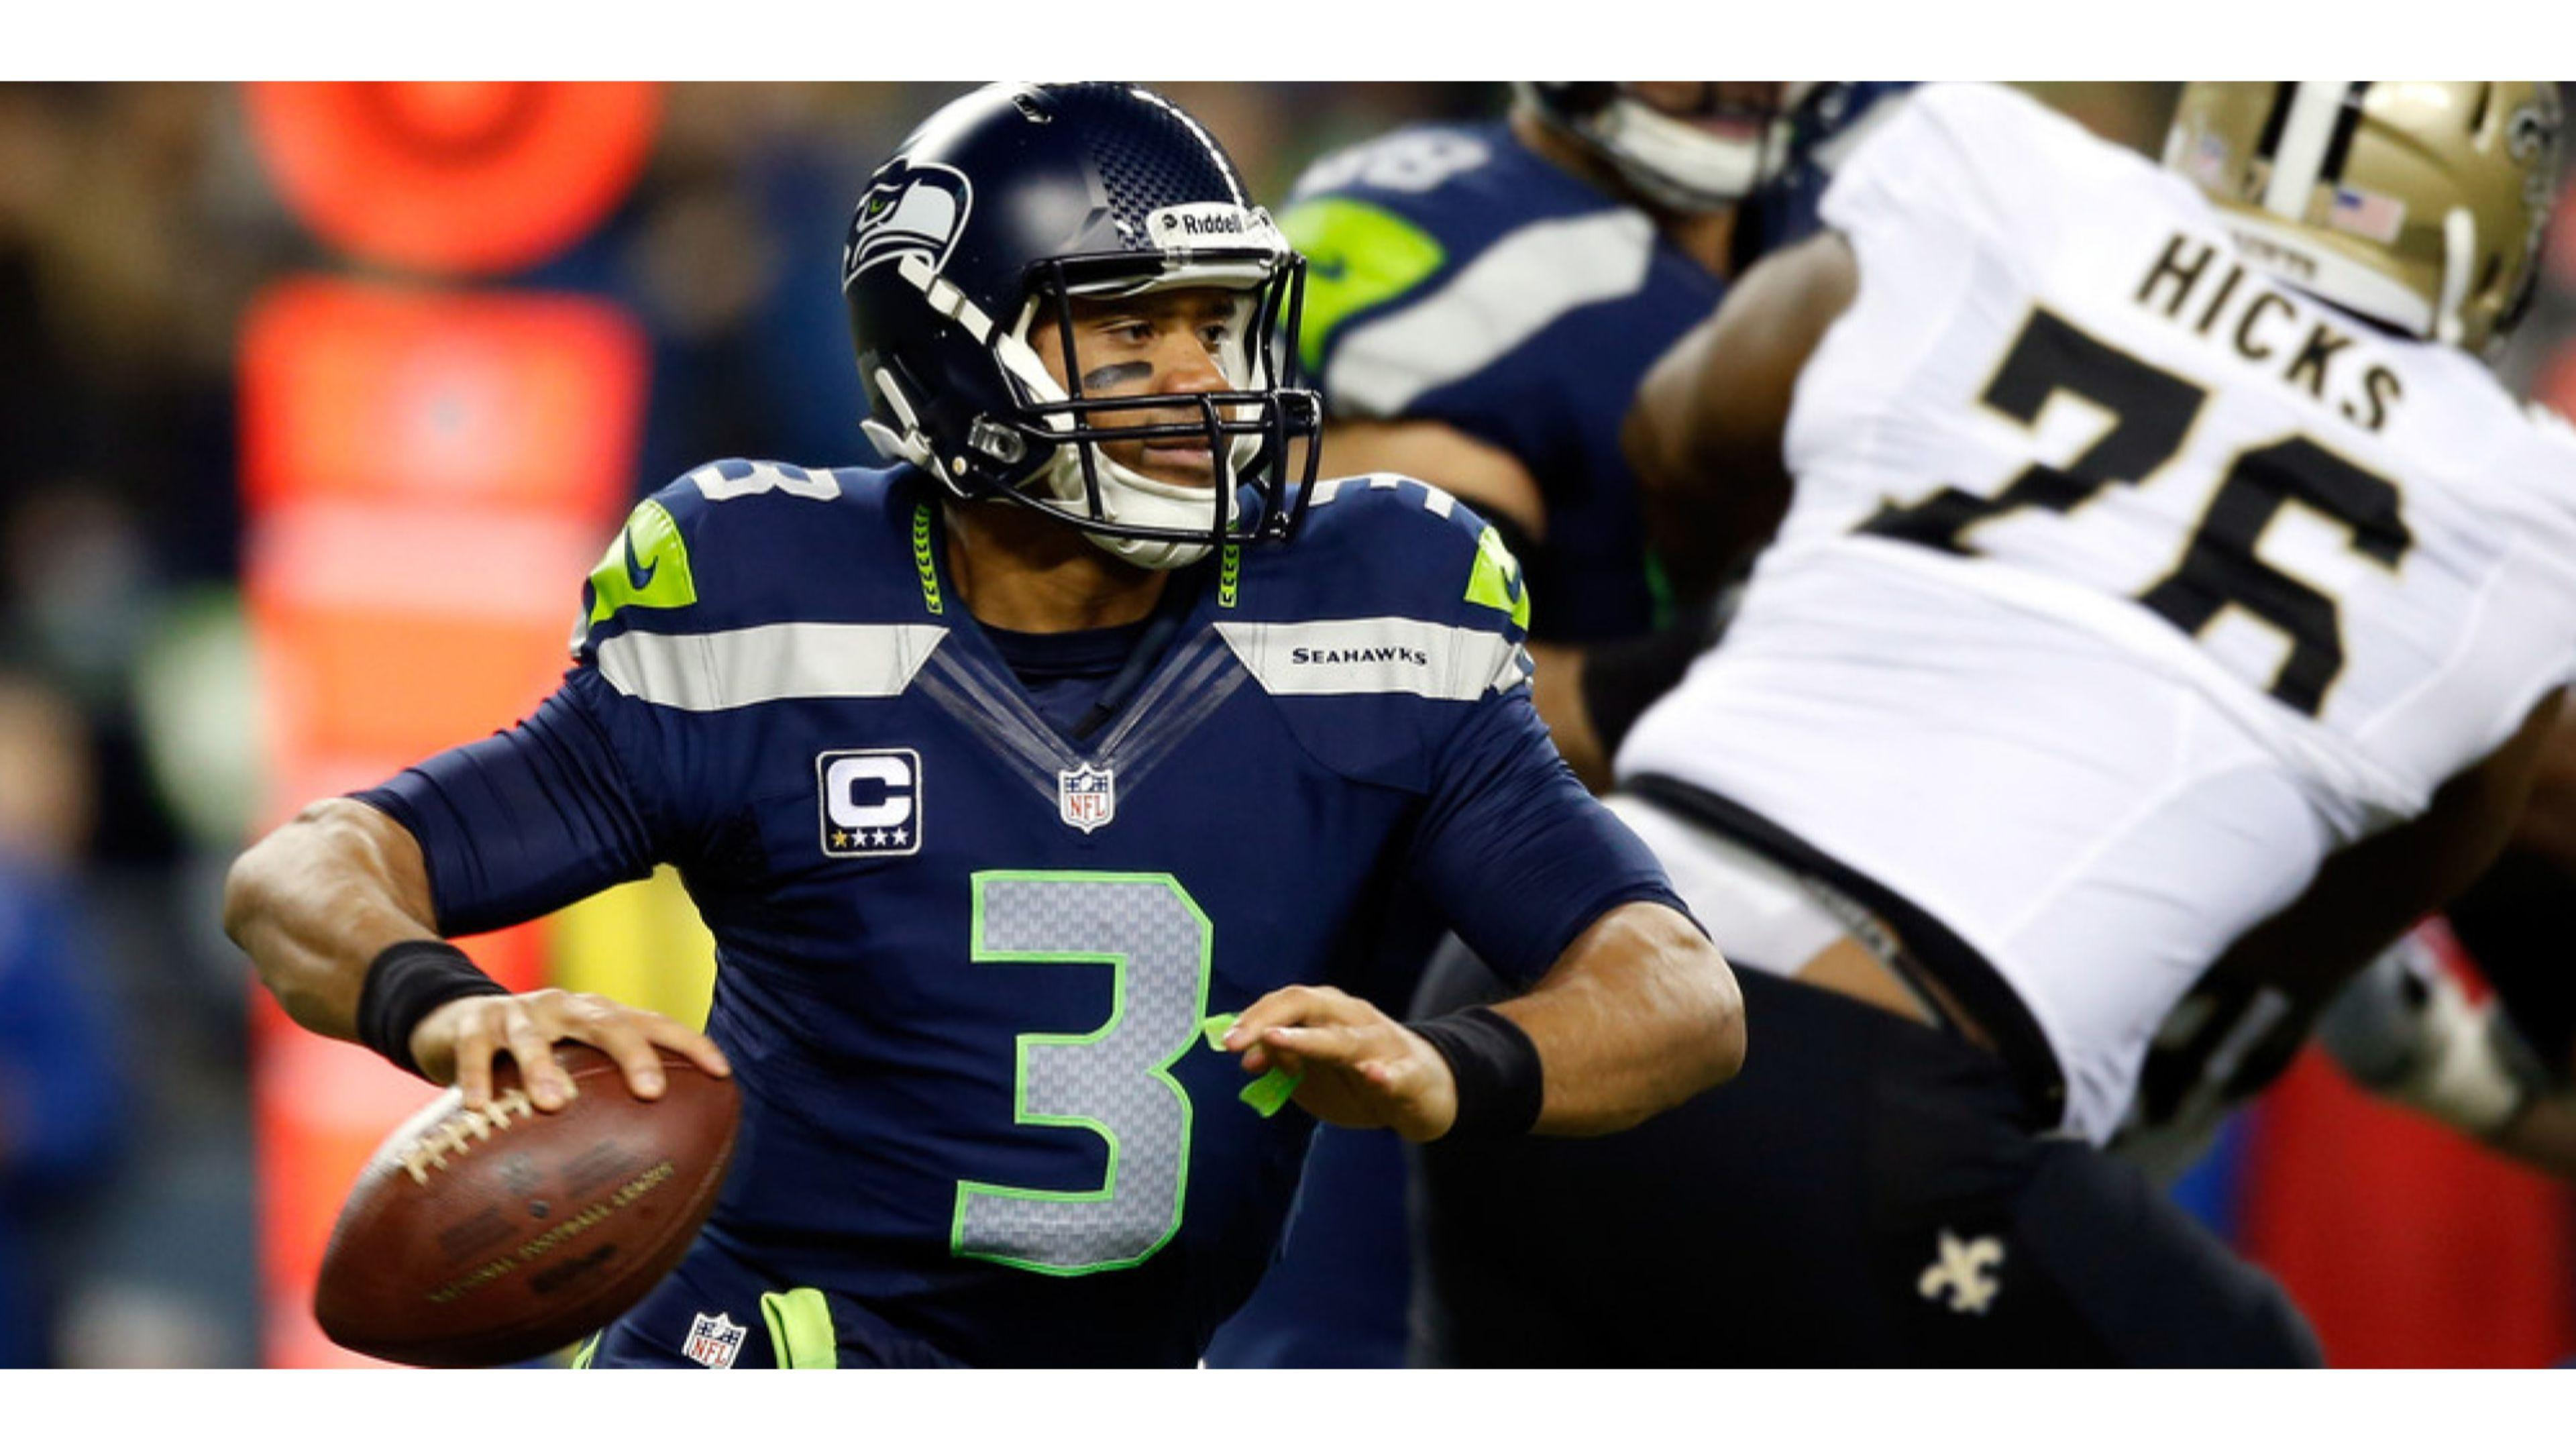 Russell Wilson 2018 Wallpapers - Wallpaper Cave